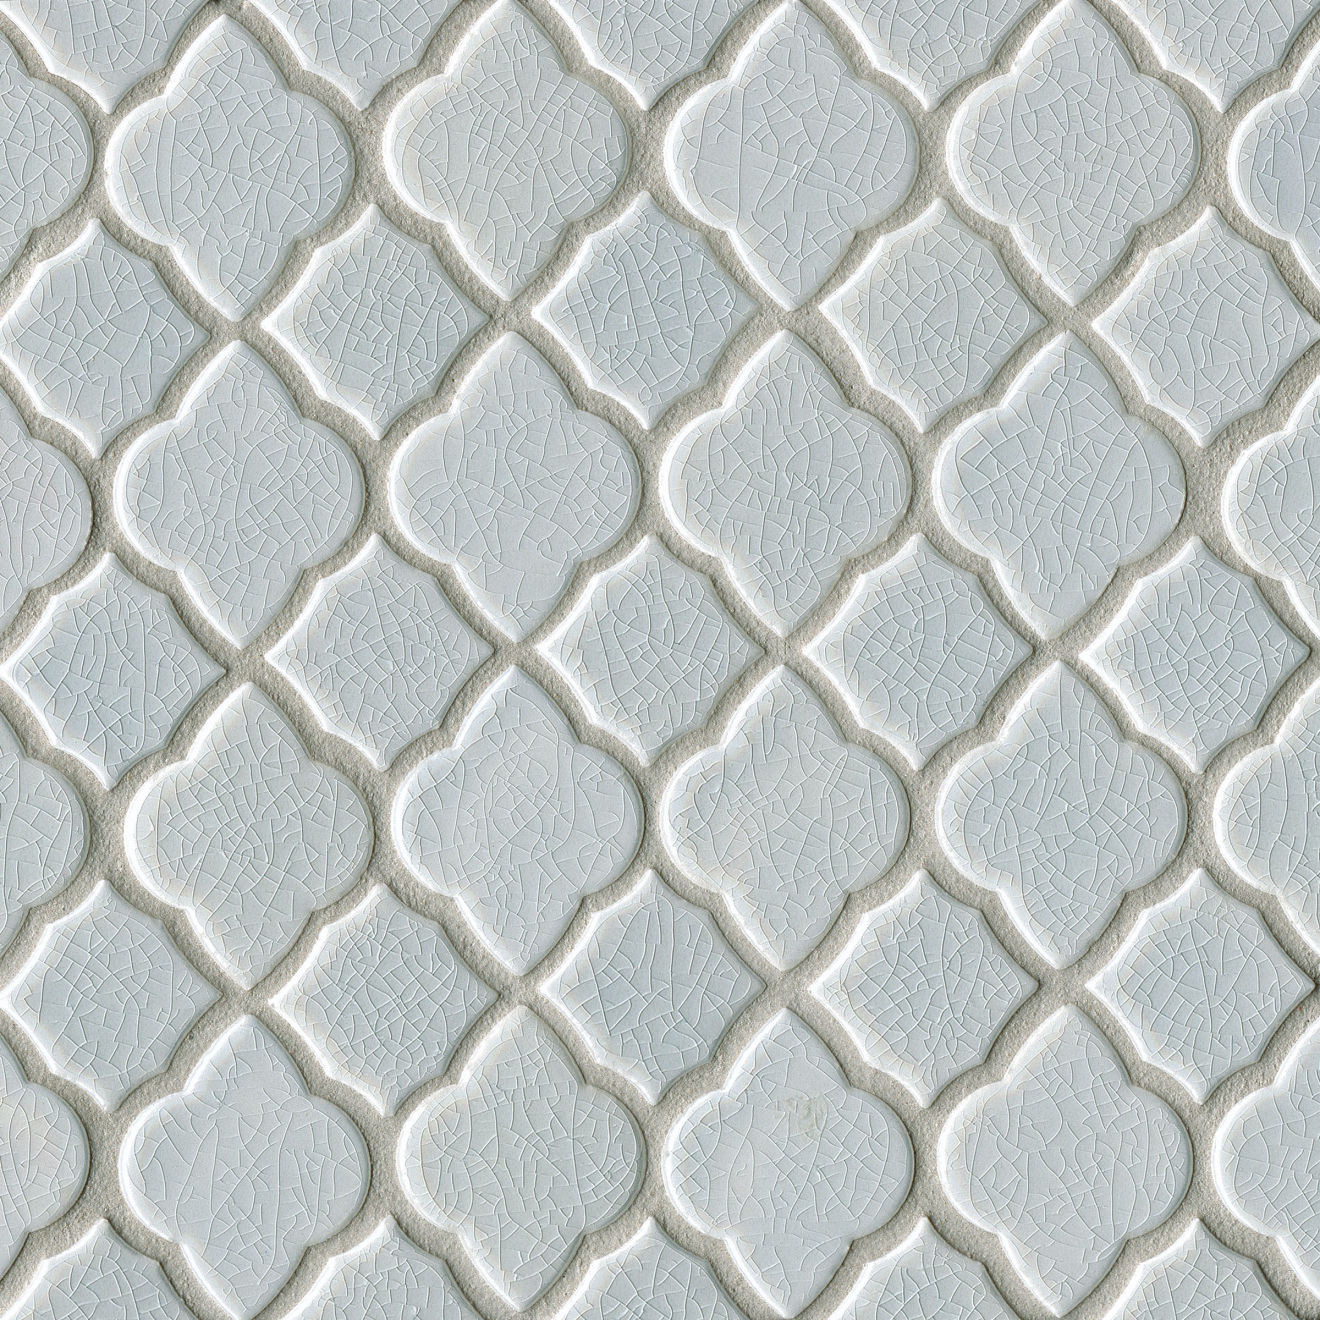 Gallerie Wall Mosaic in Grey